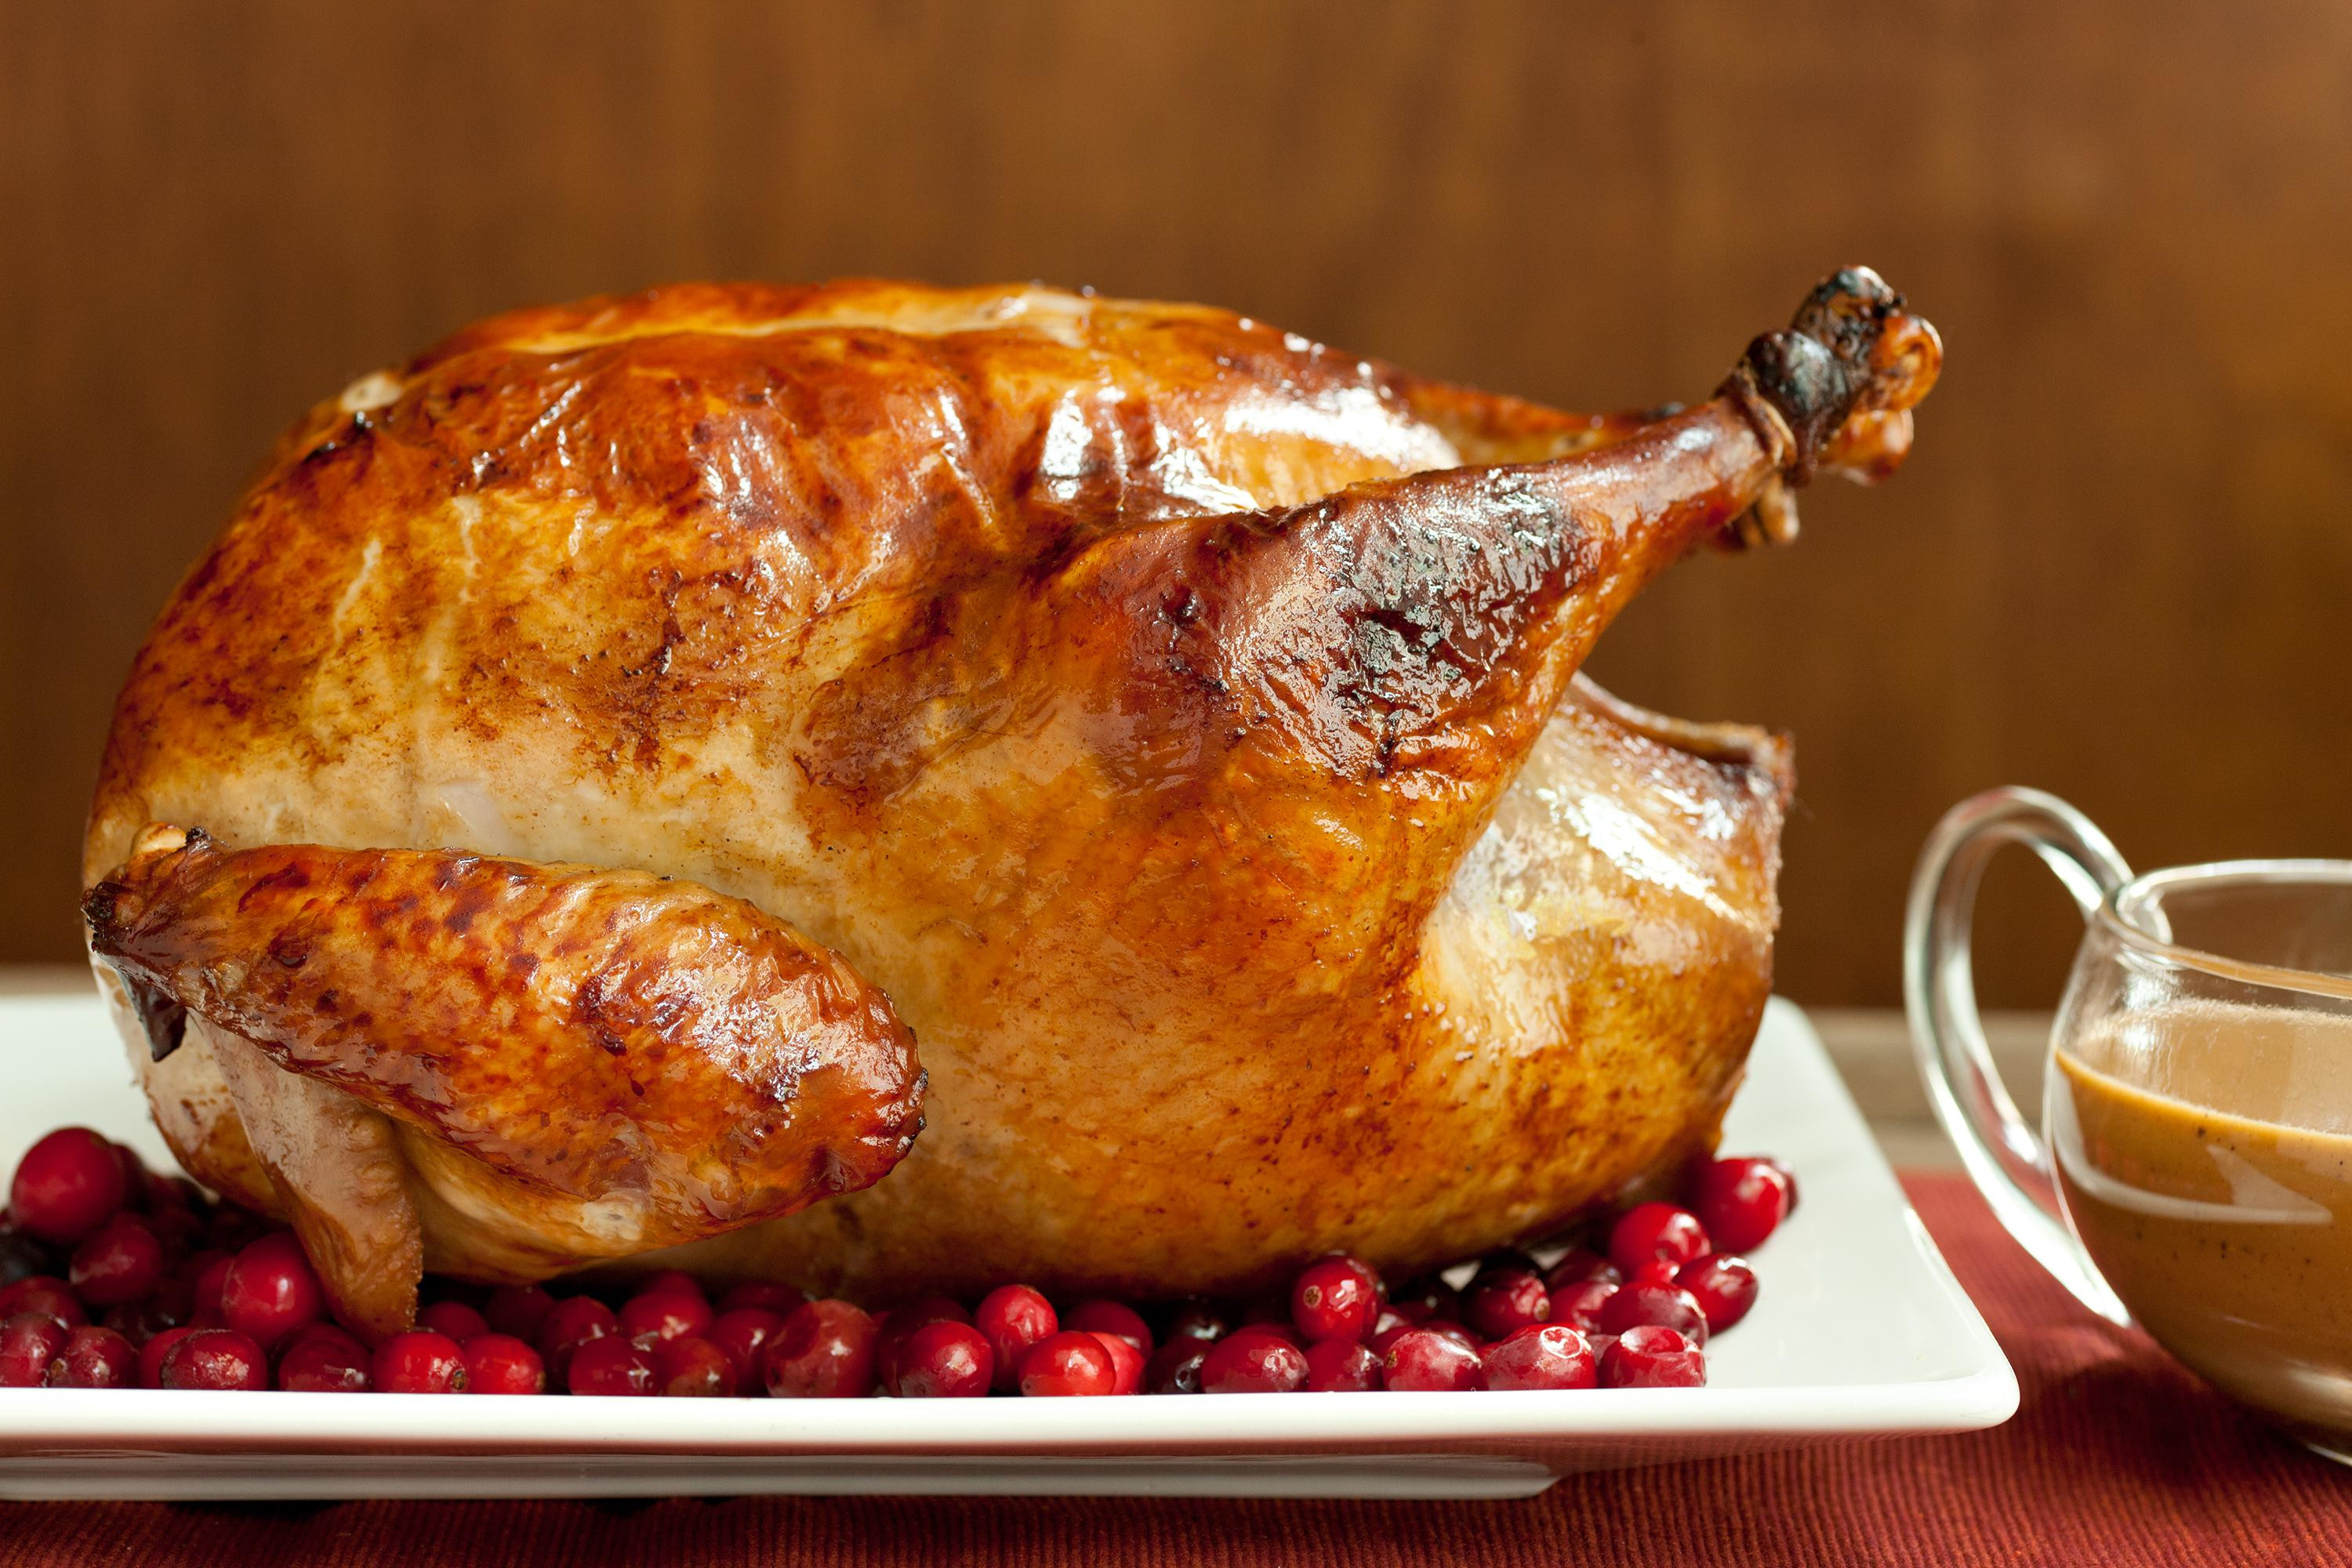 Turkey Pictures For Thanksgiving  Easy Brined Roasted Turkey with Creamed Gravy Recipe